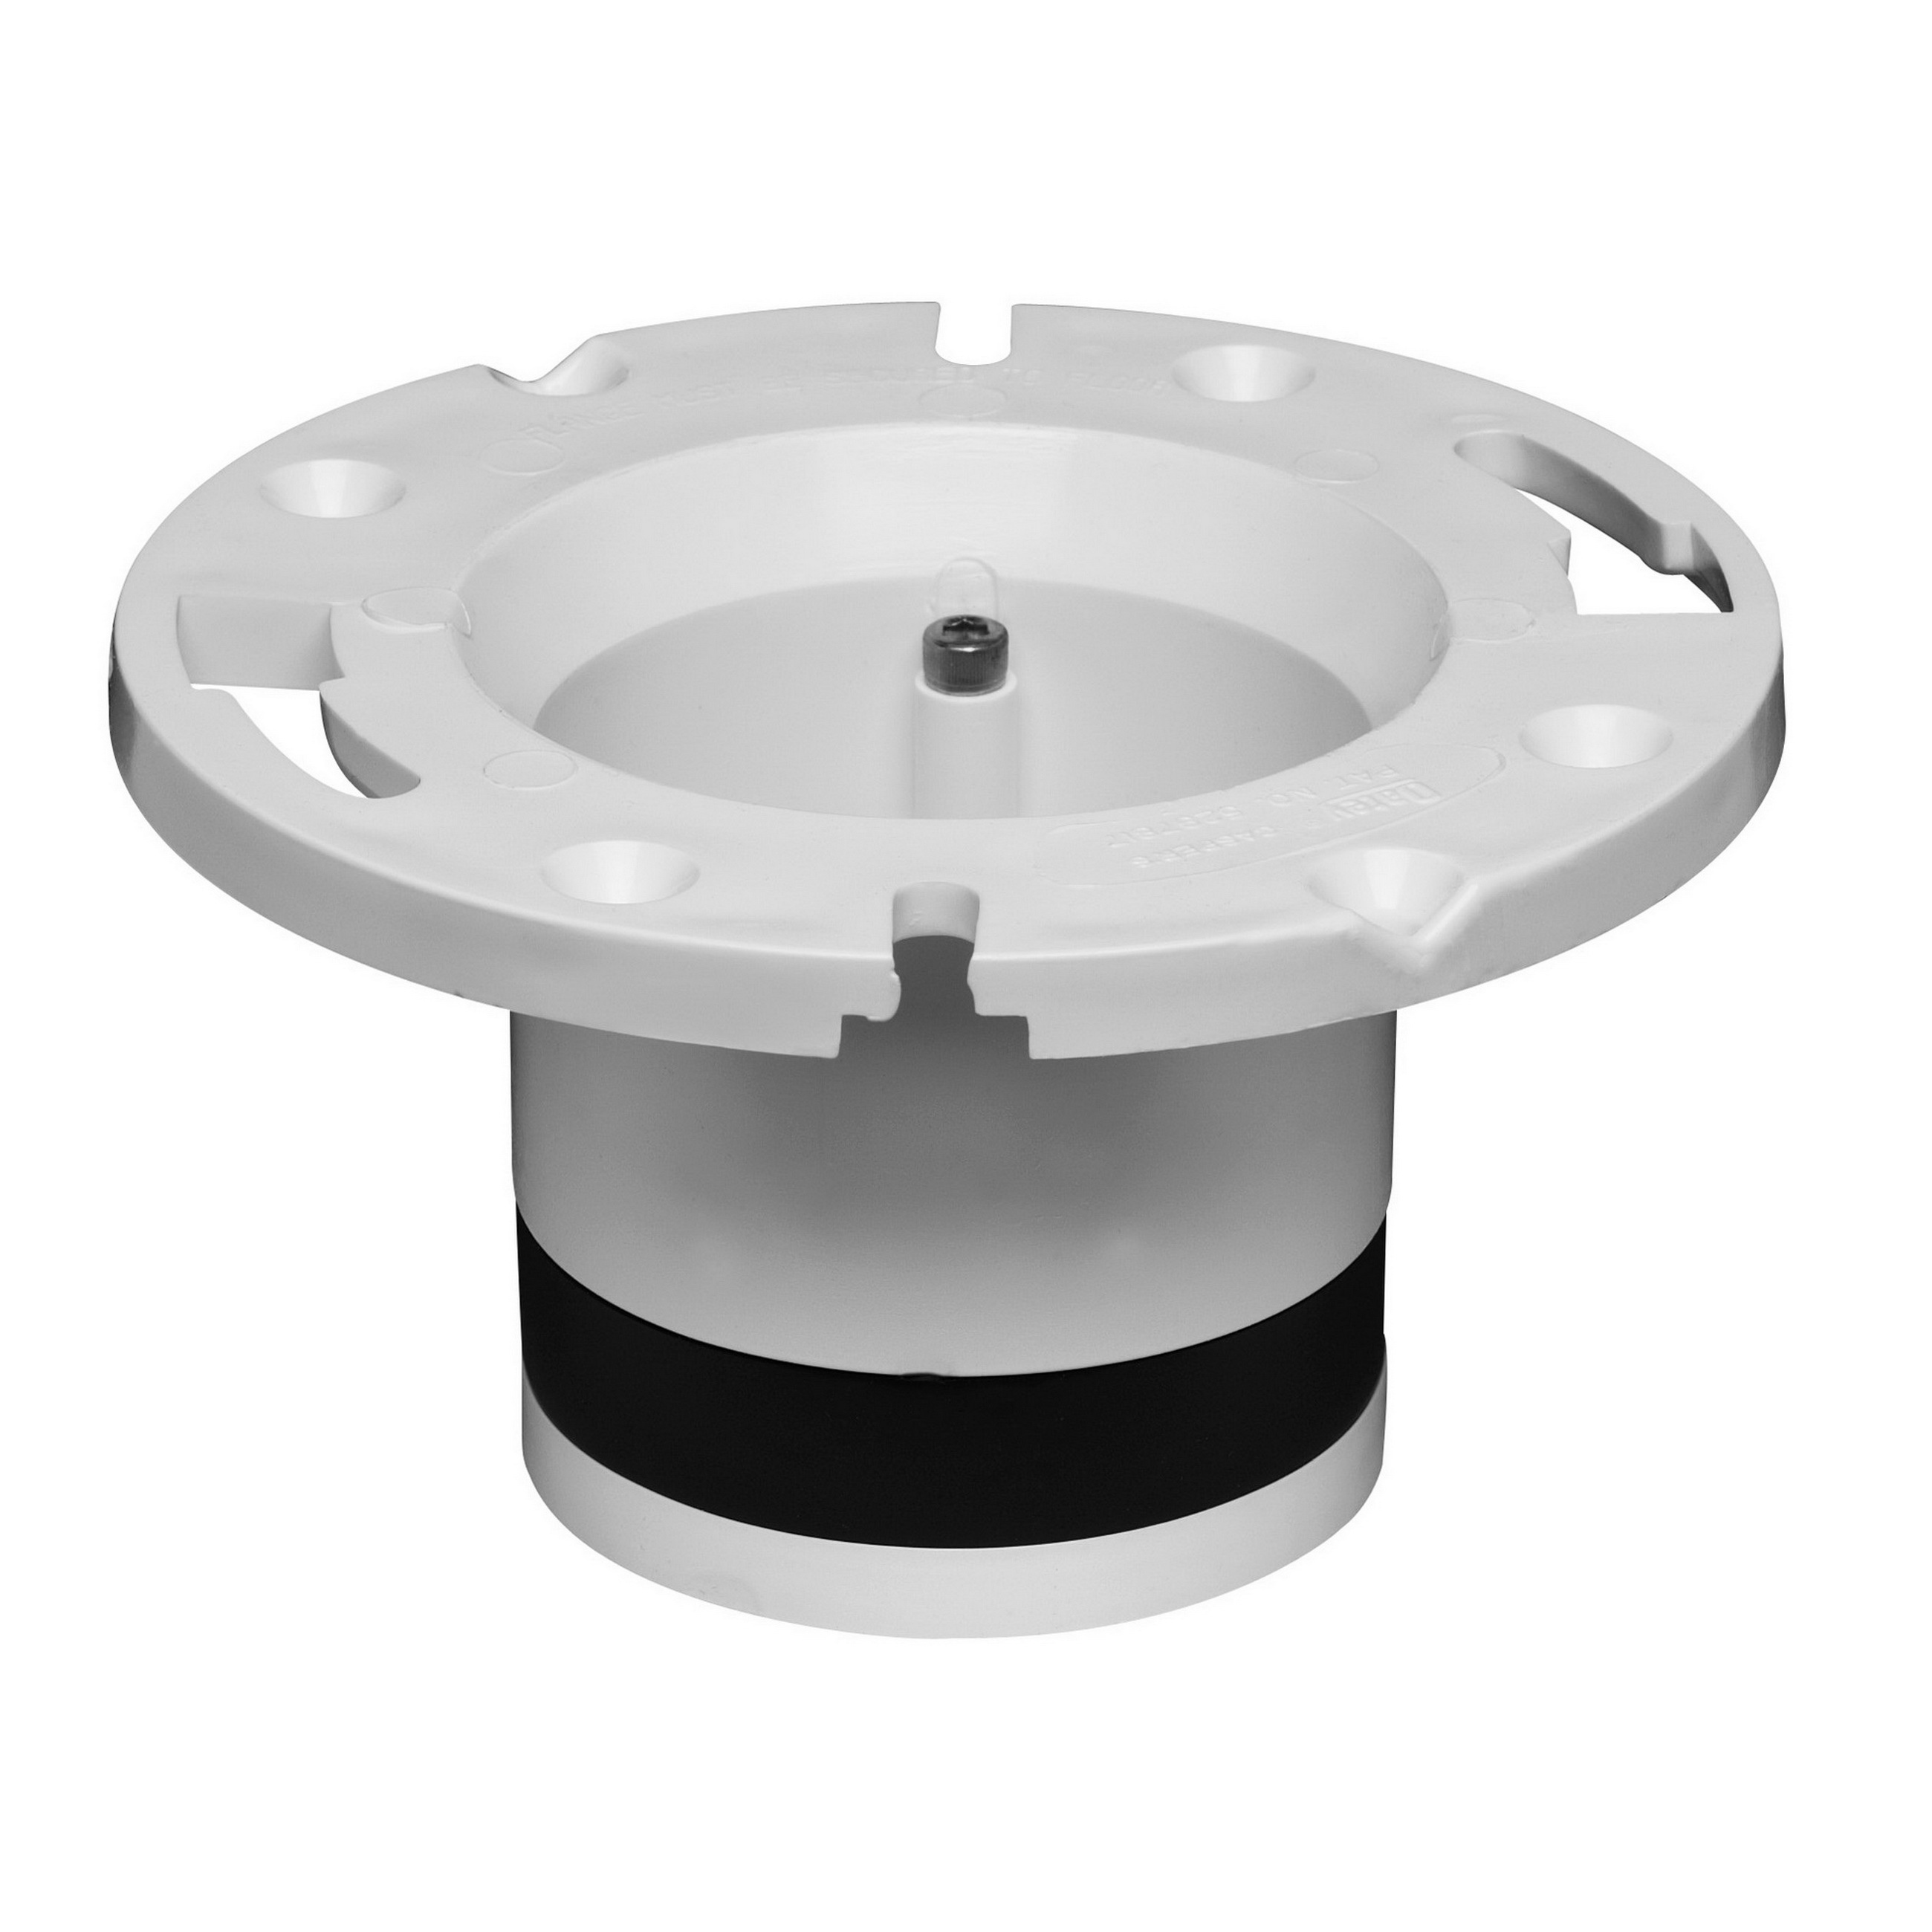 Oatey® 43539 White/Black PVC Replacement Closet Flange, 4 in